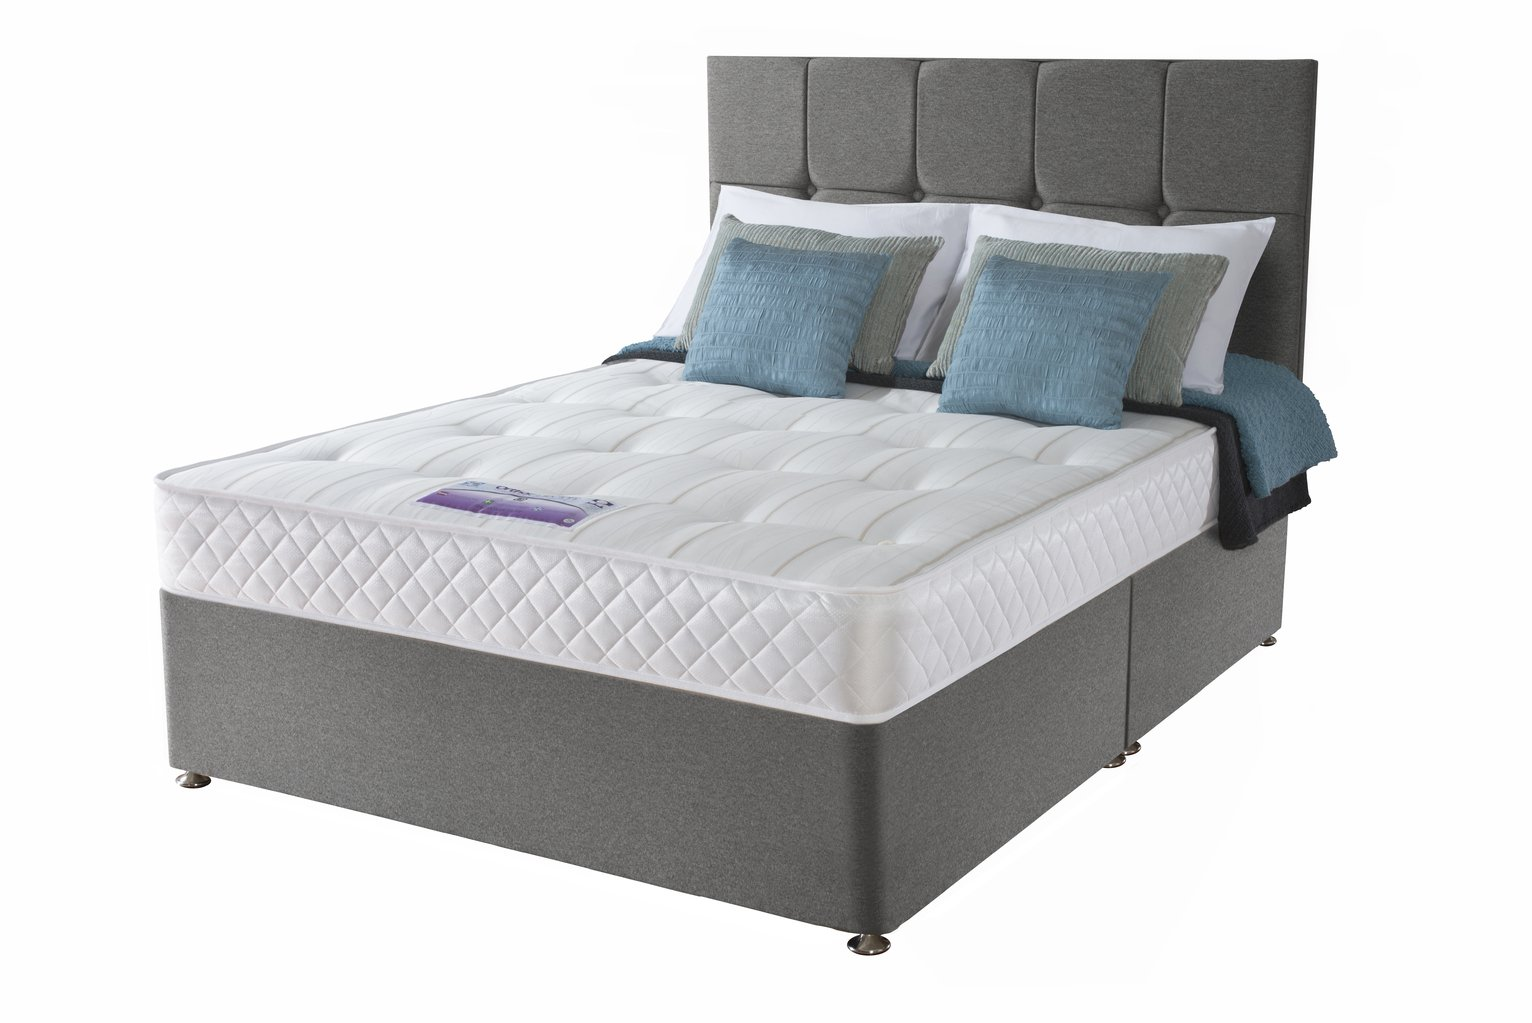 Sealy Posturepedic Firm Ortho Divan - Kingsize